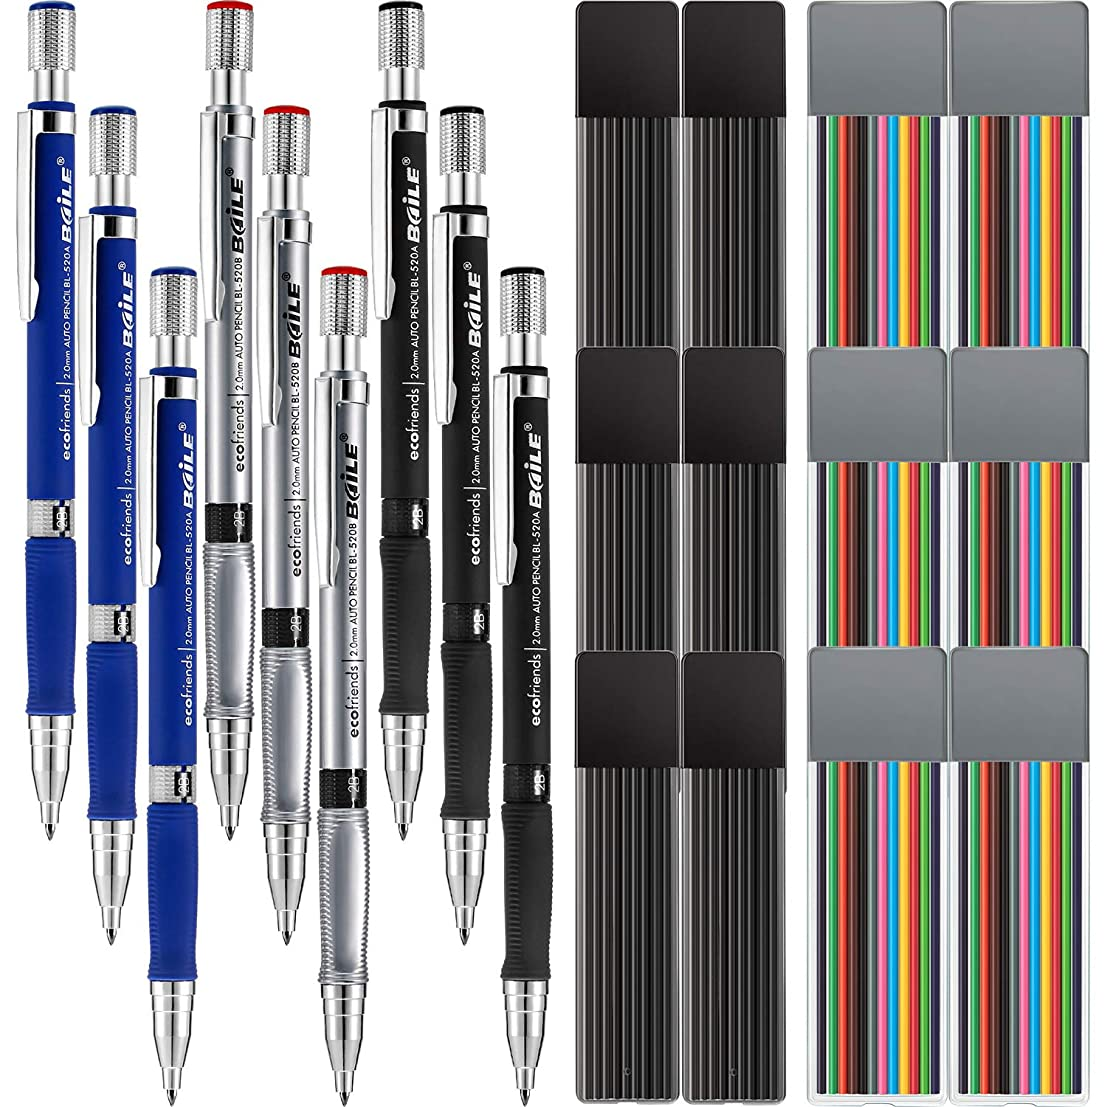 Jovitec 21 Pieces 2.0 mm Mechanical Pencil Set, 9 Pieces Automatic Pencils and 12 Cases Lead Refills (Color and Black) for Draft Drawing, Writing, Crafting, Art Sketching